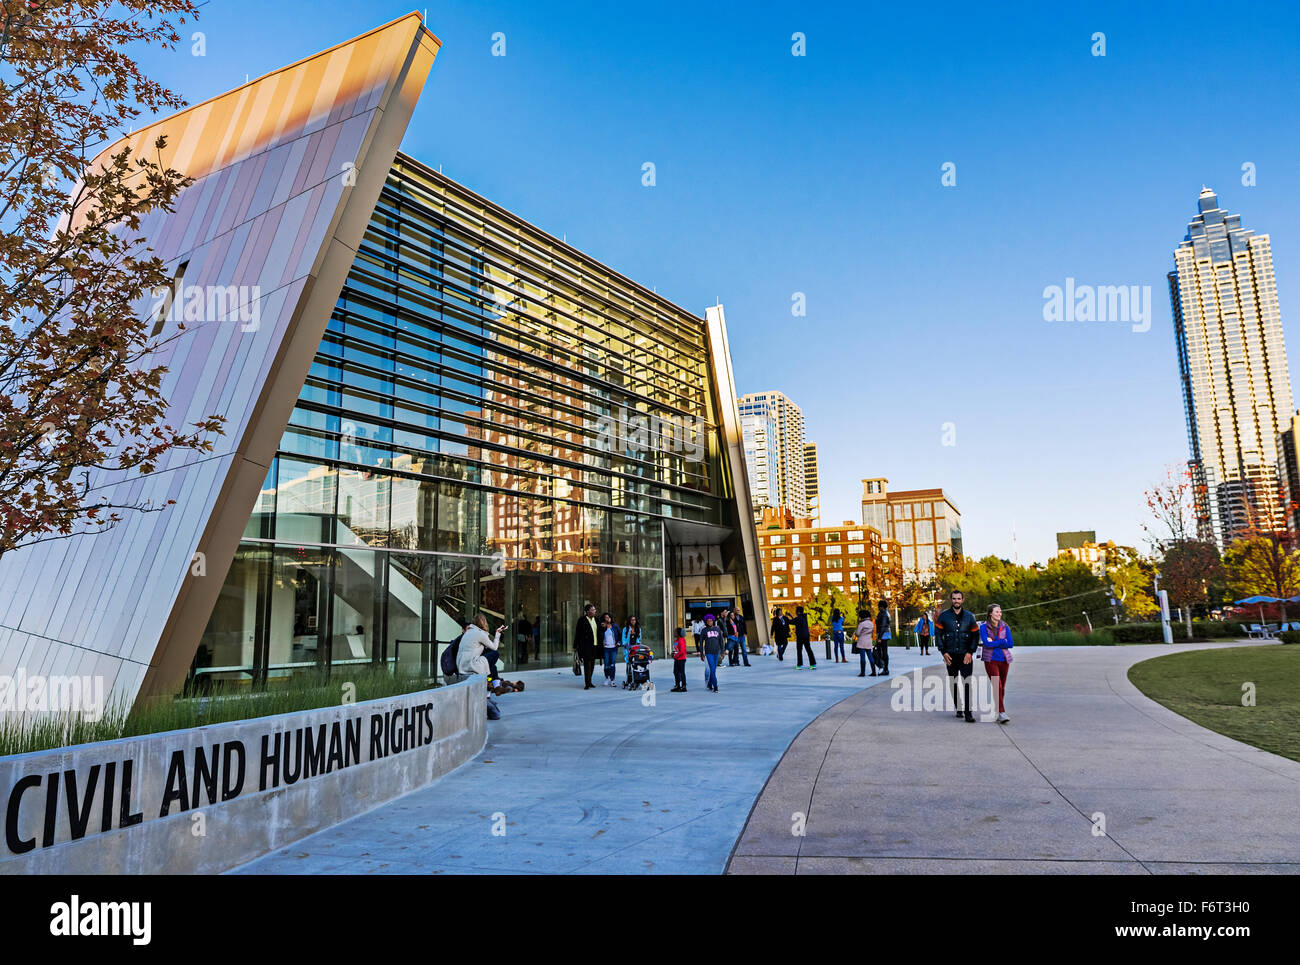 Center for Civil and Human Rights, Atlanta, Georgia, USA - Stock Image